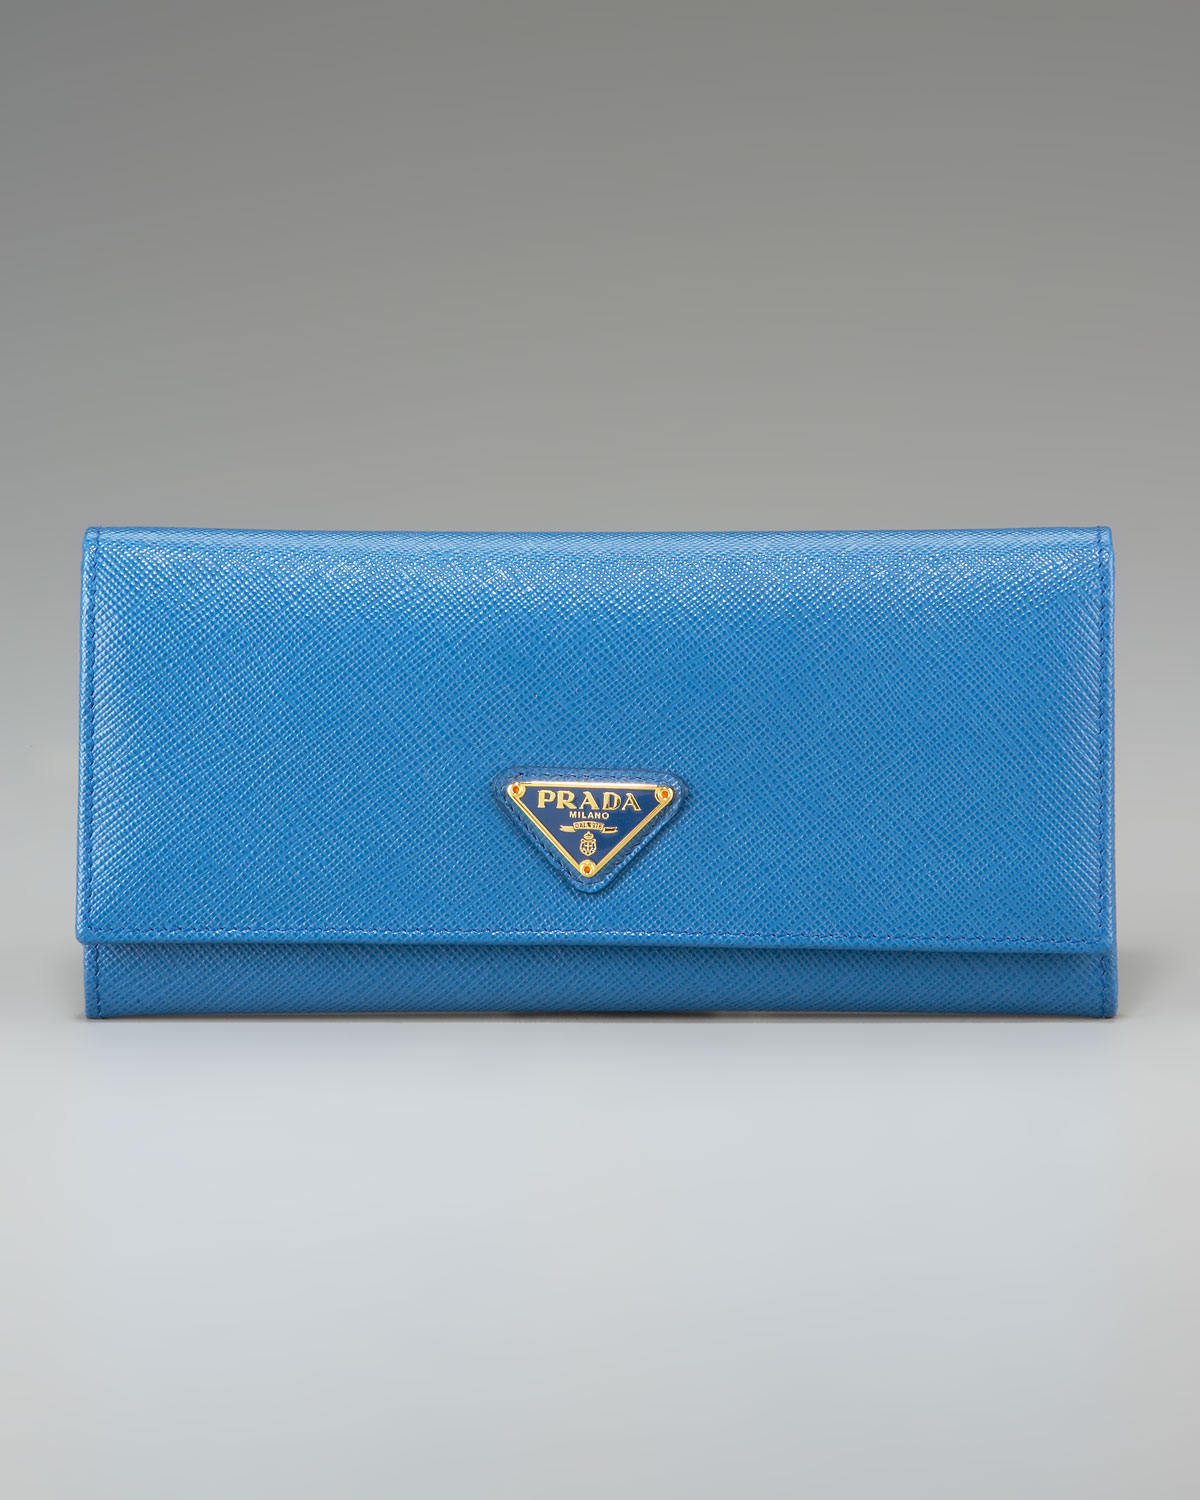 prada handbag collections - prada saffiano bow continental wallet